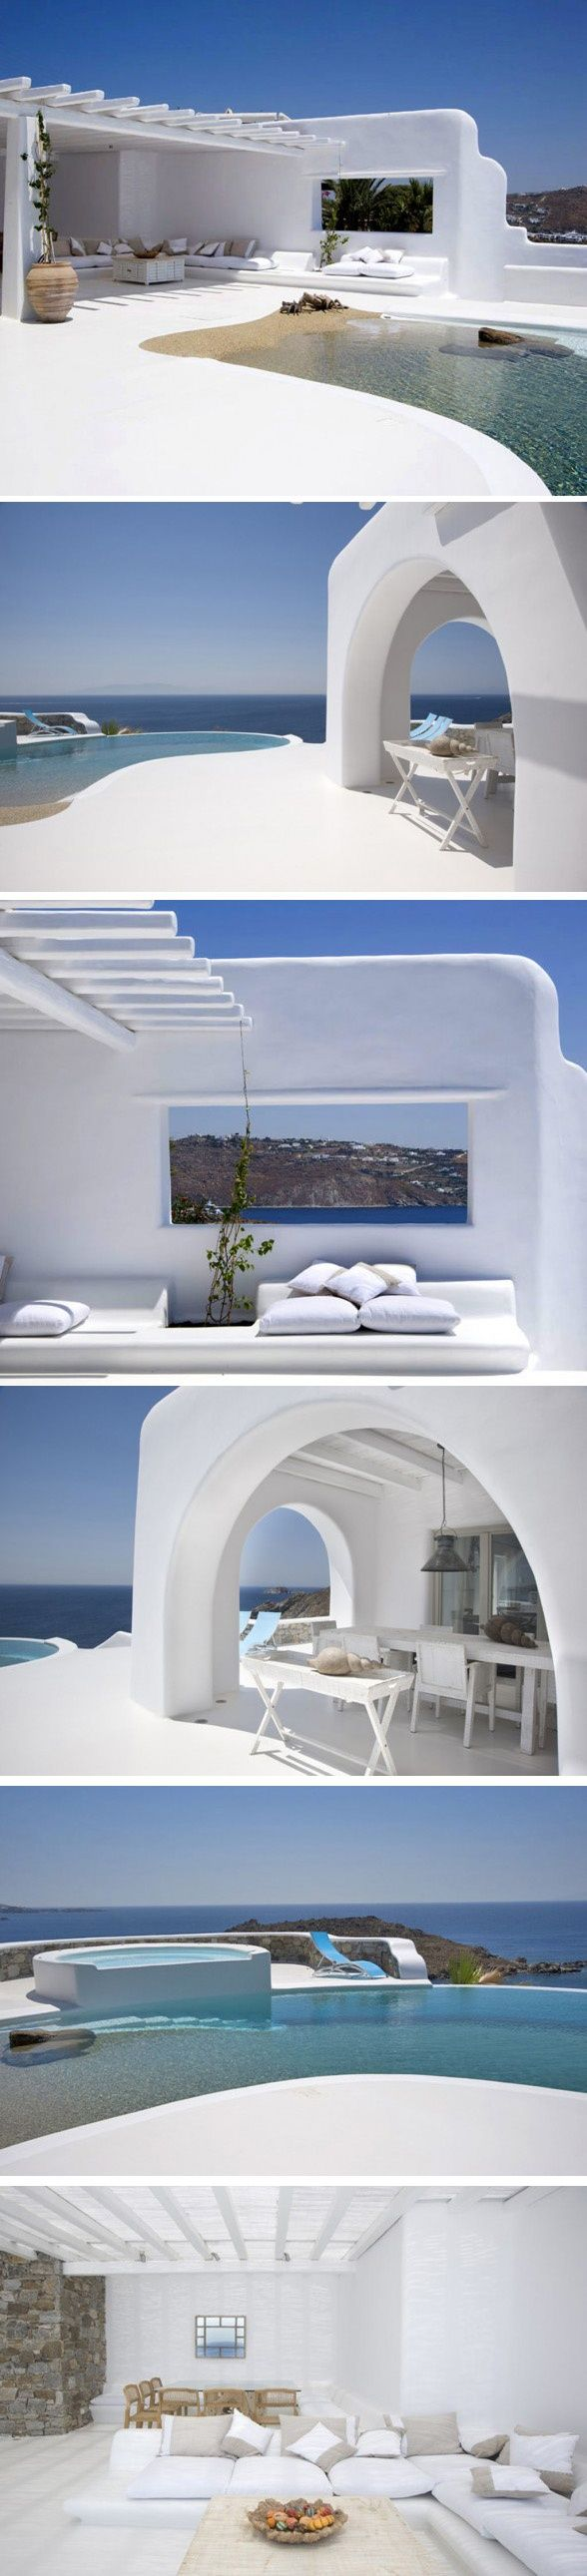 Mykonos Villa 2010, Greece: